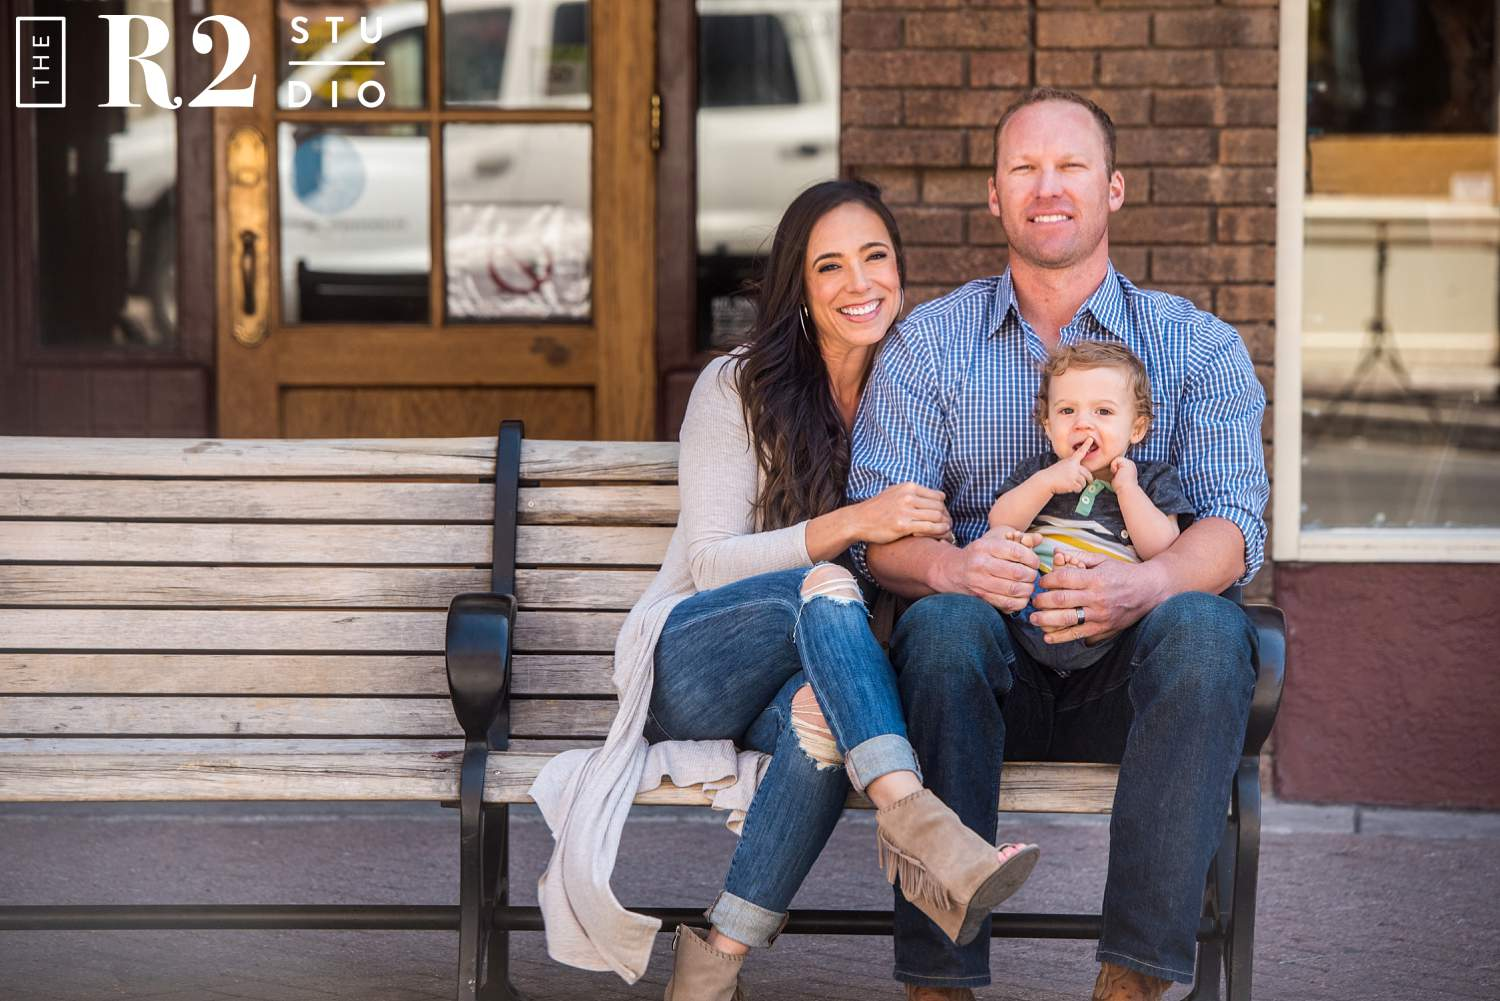 downtown flagstaff Family Photography Session